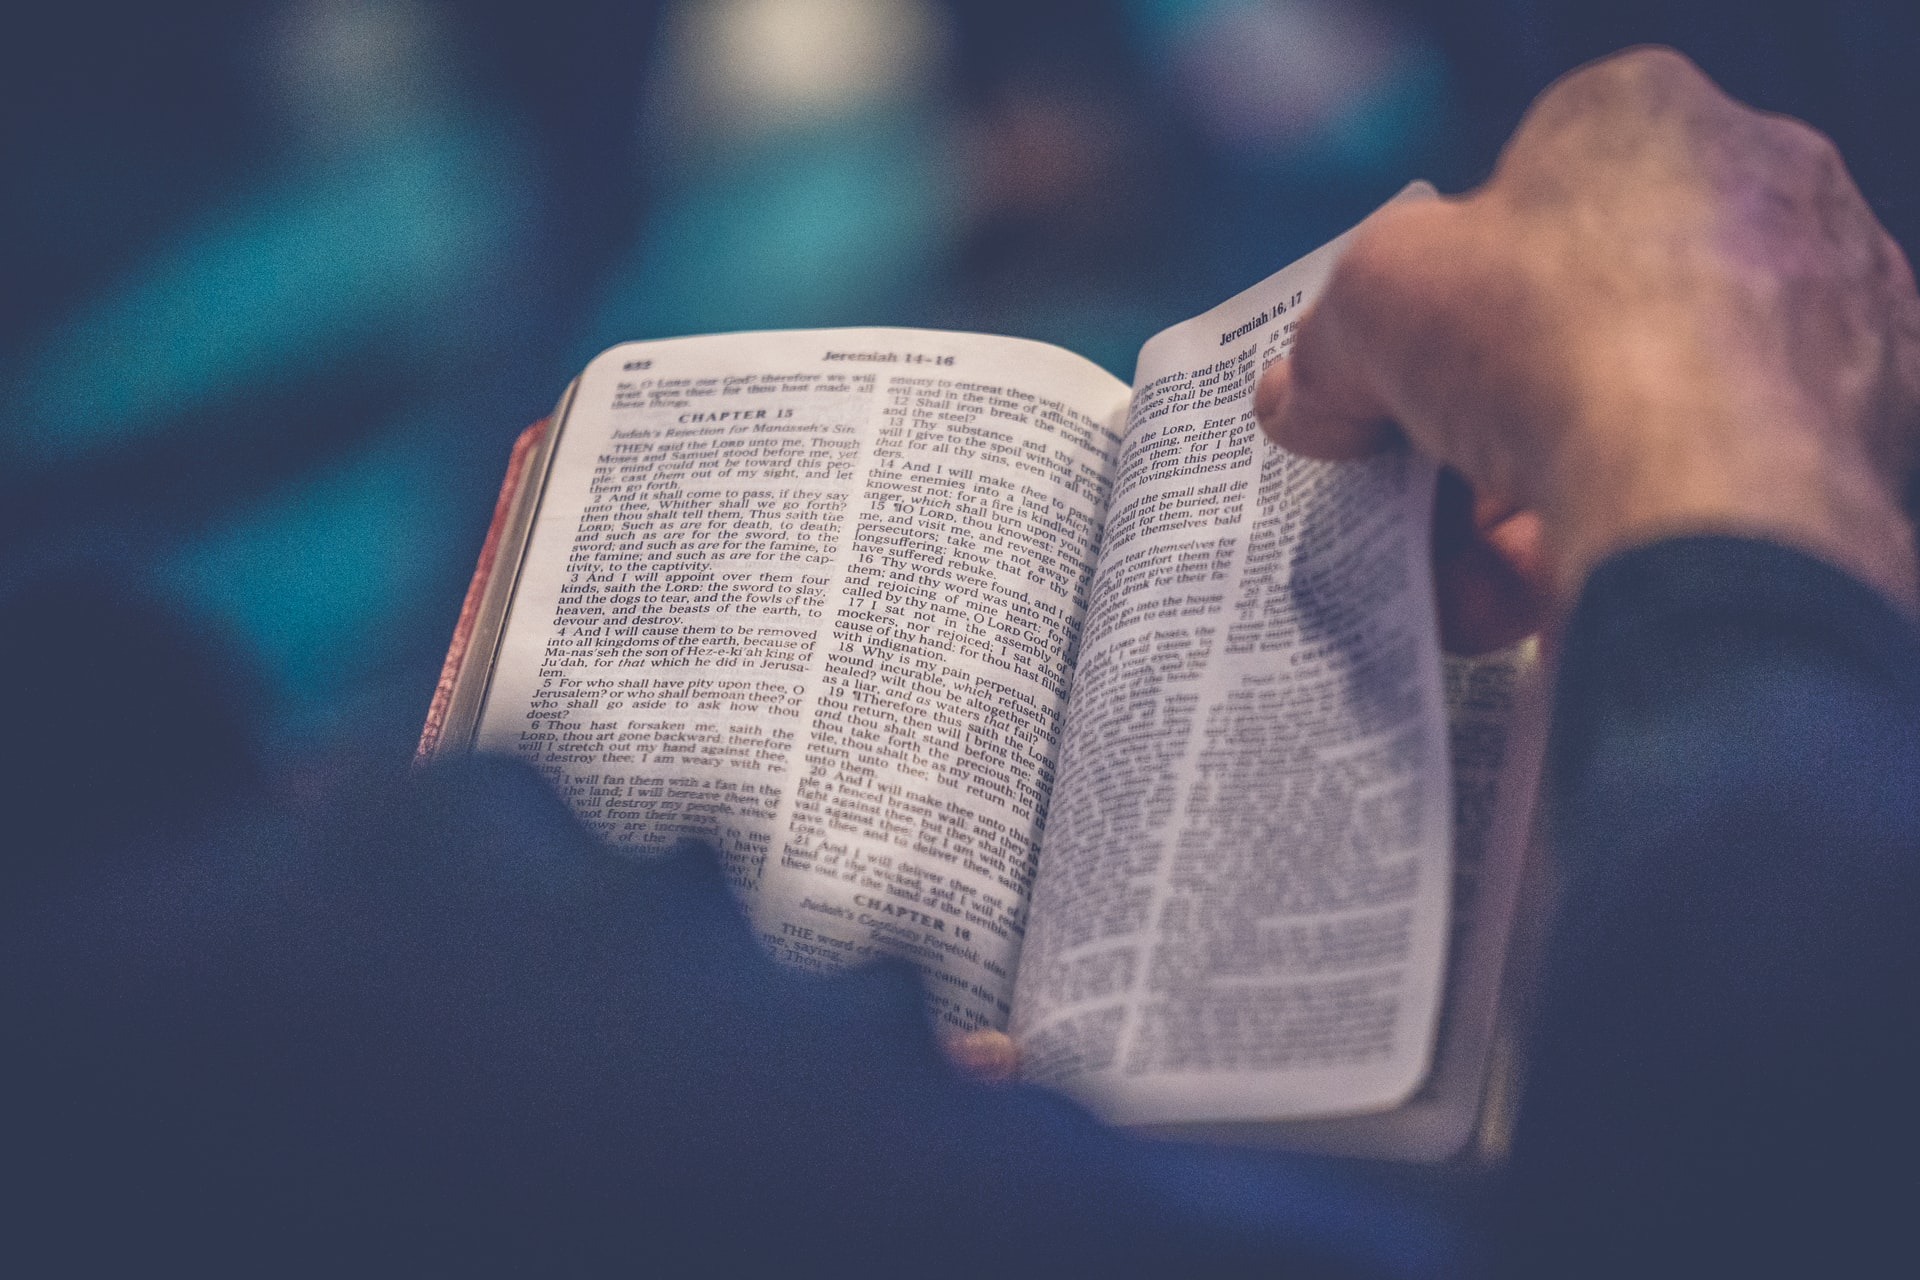 Photo of someone reading the bible.